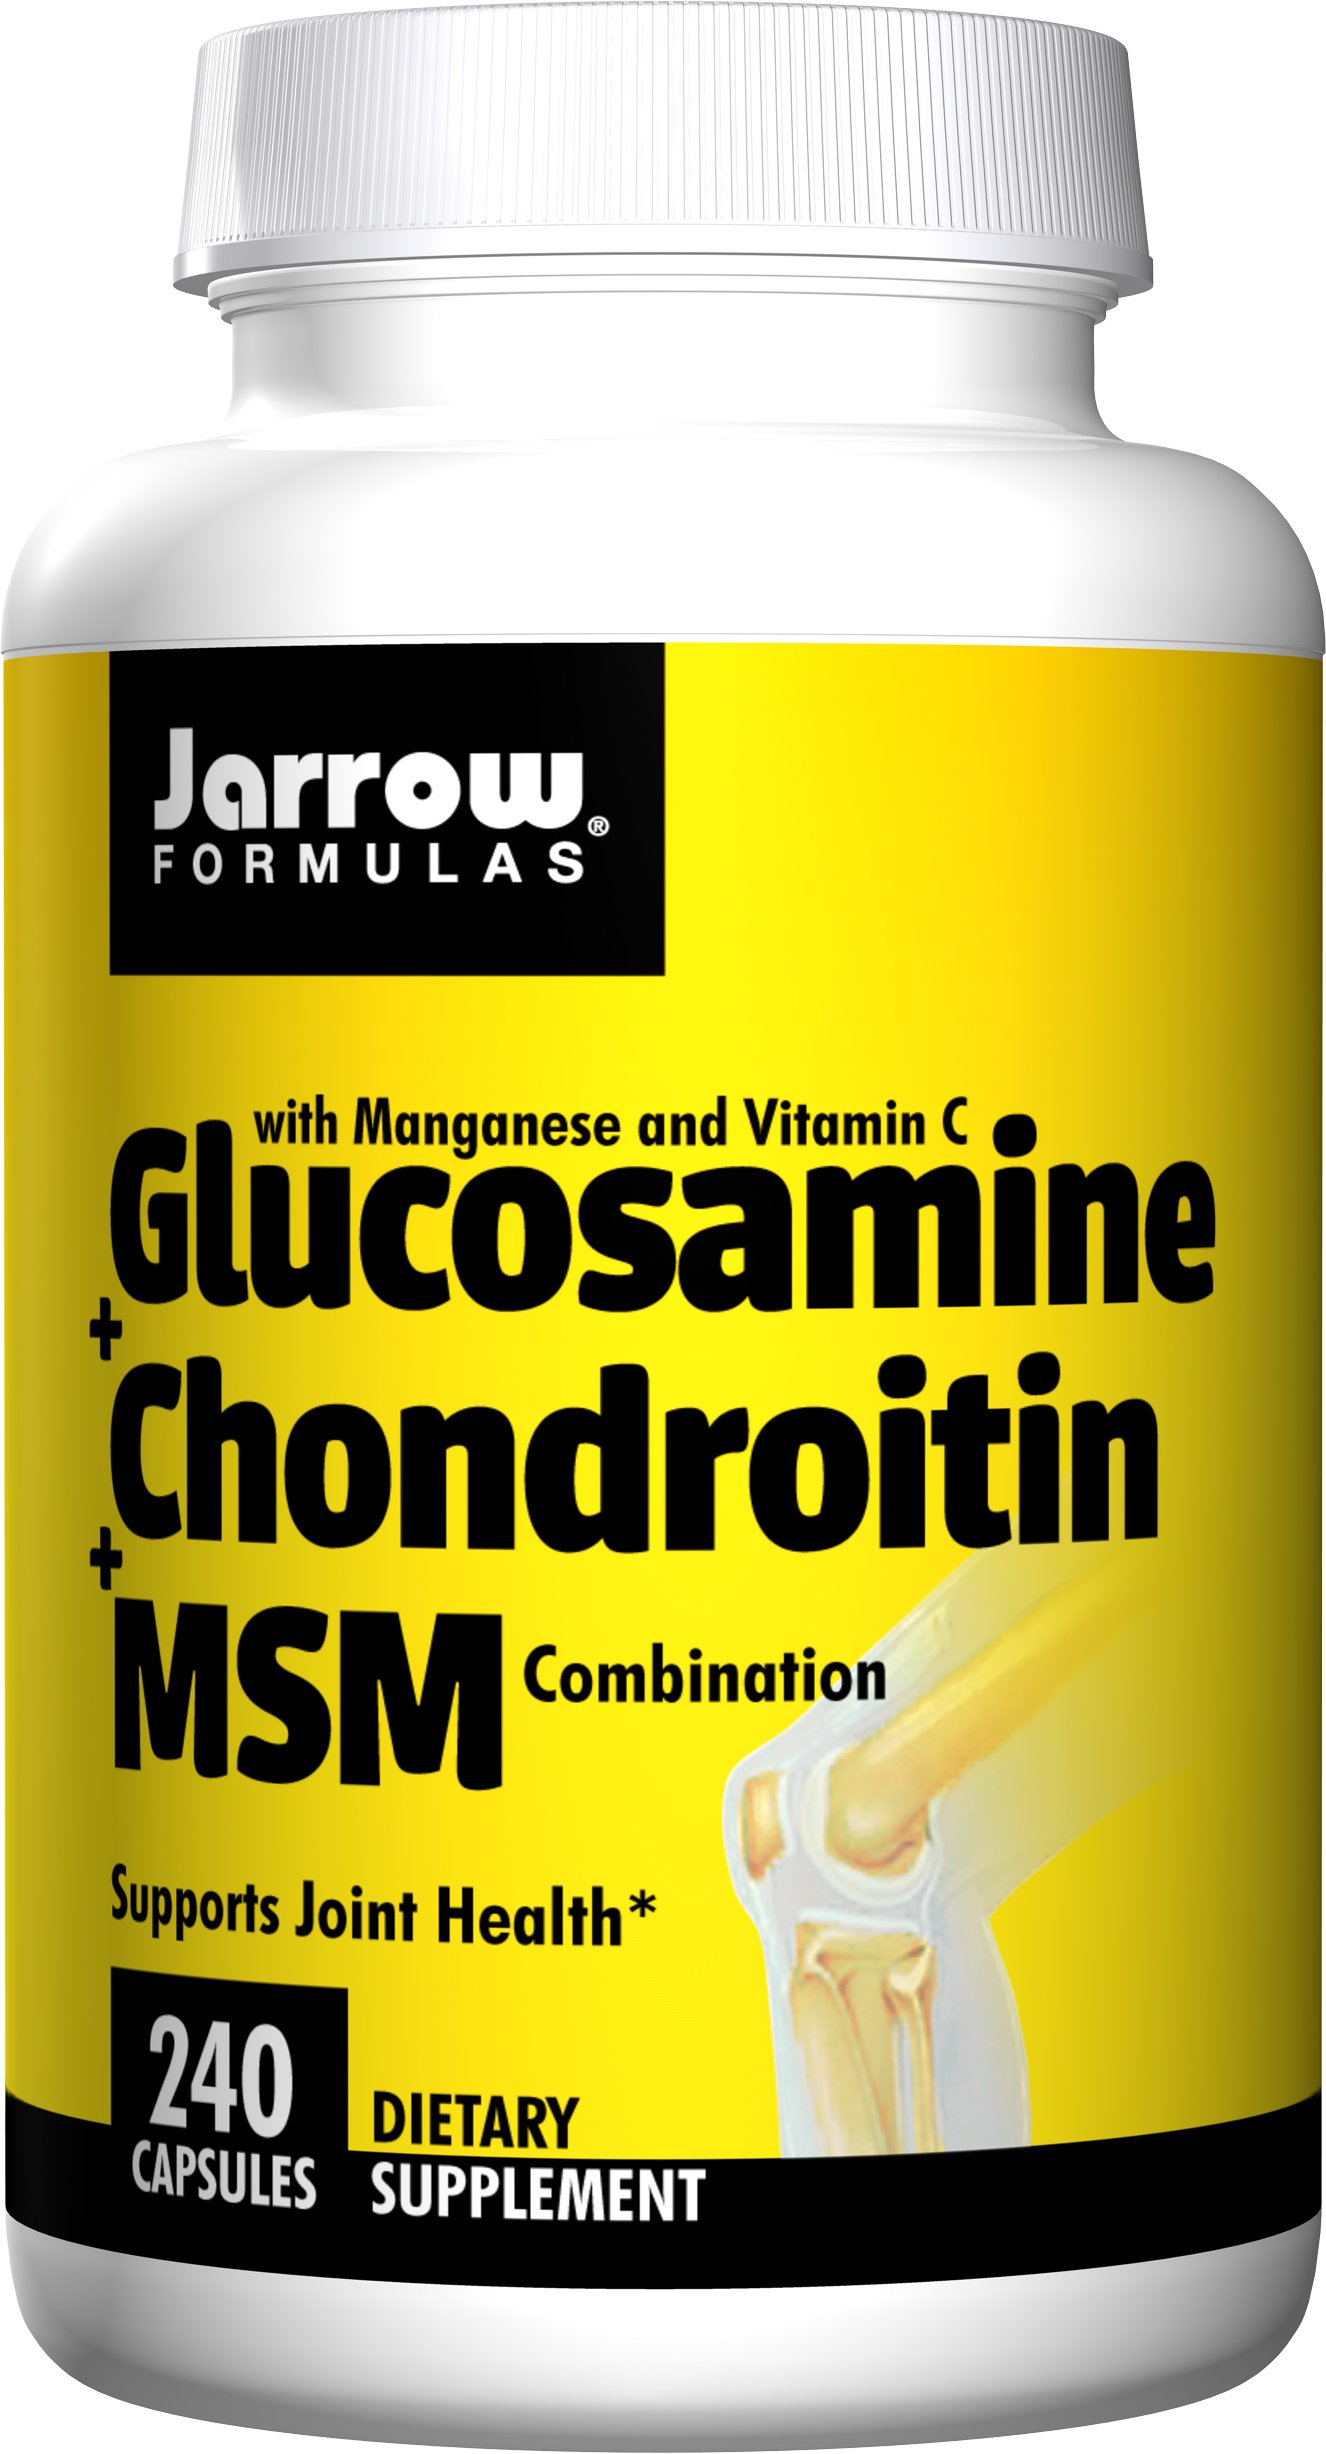 Jarrow Formulas Glucosamine and Chondroitin and MSM, Supports Joint Health, 240 Caps